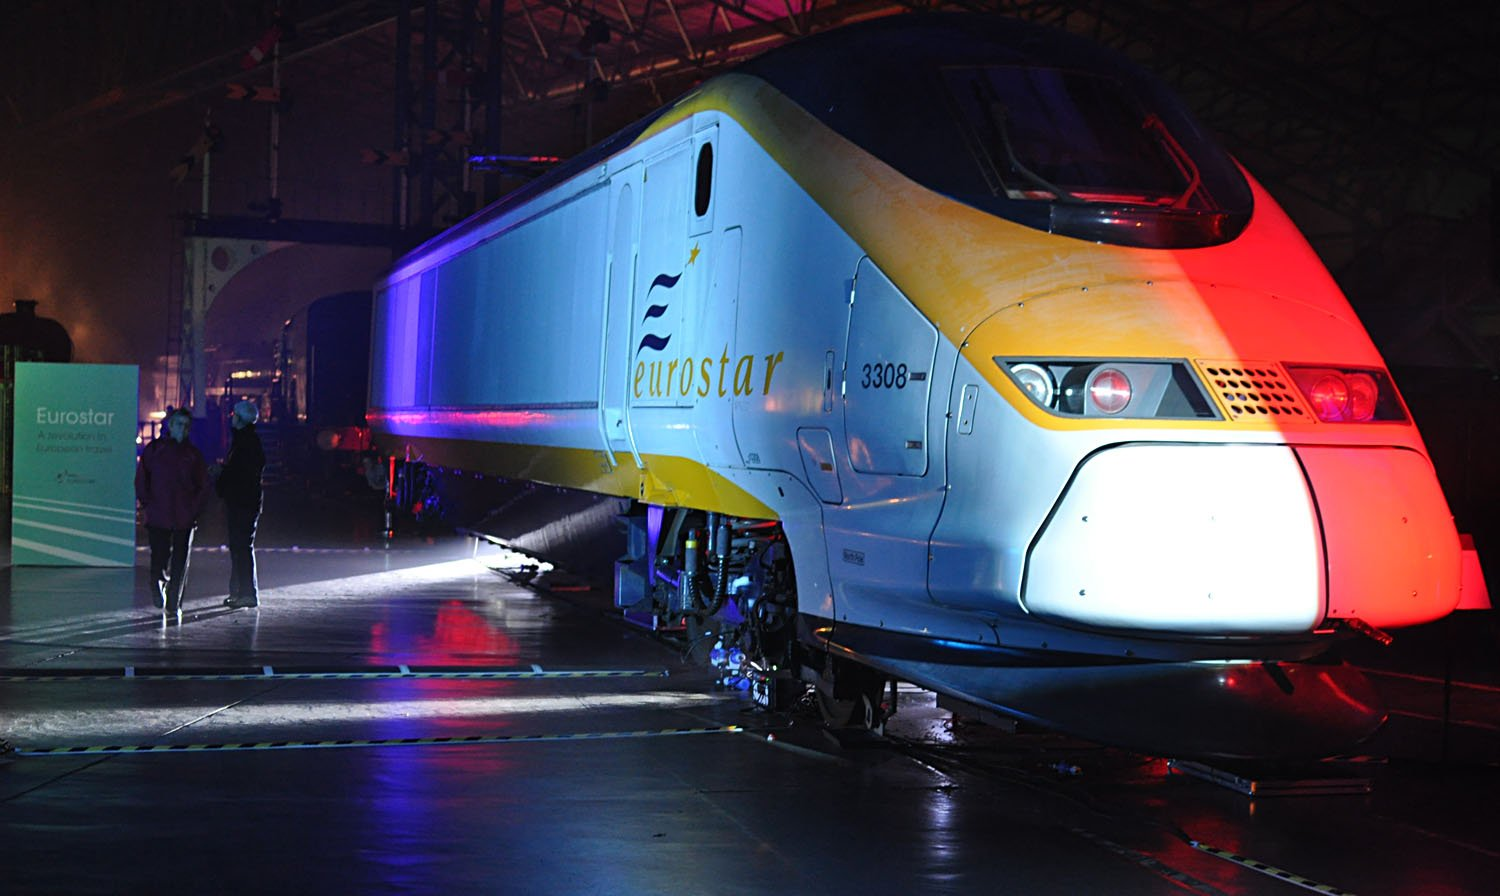 National Railway Museum York - Eurostar Loco